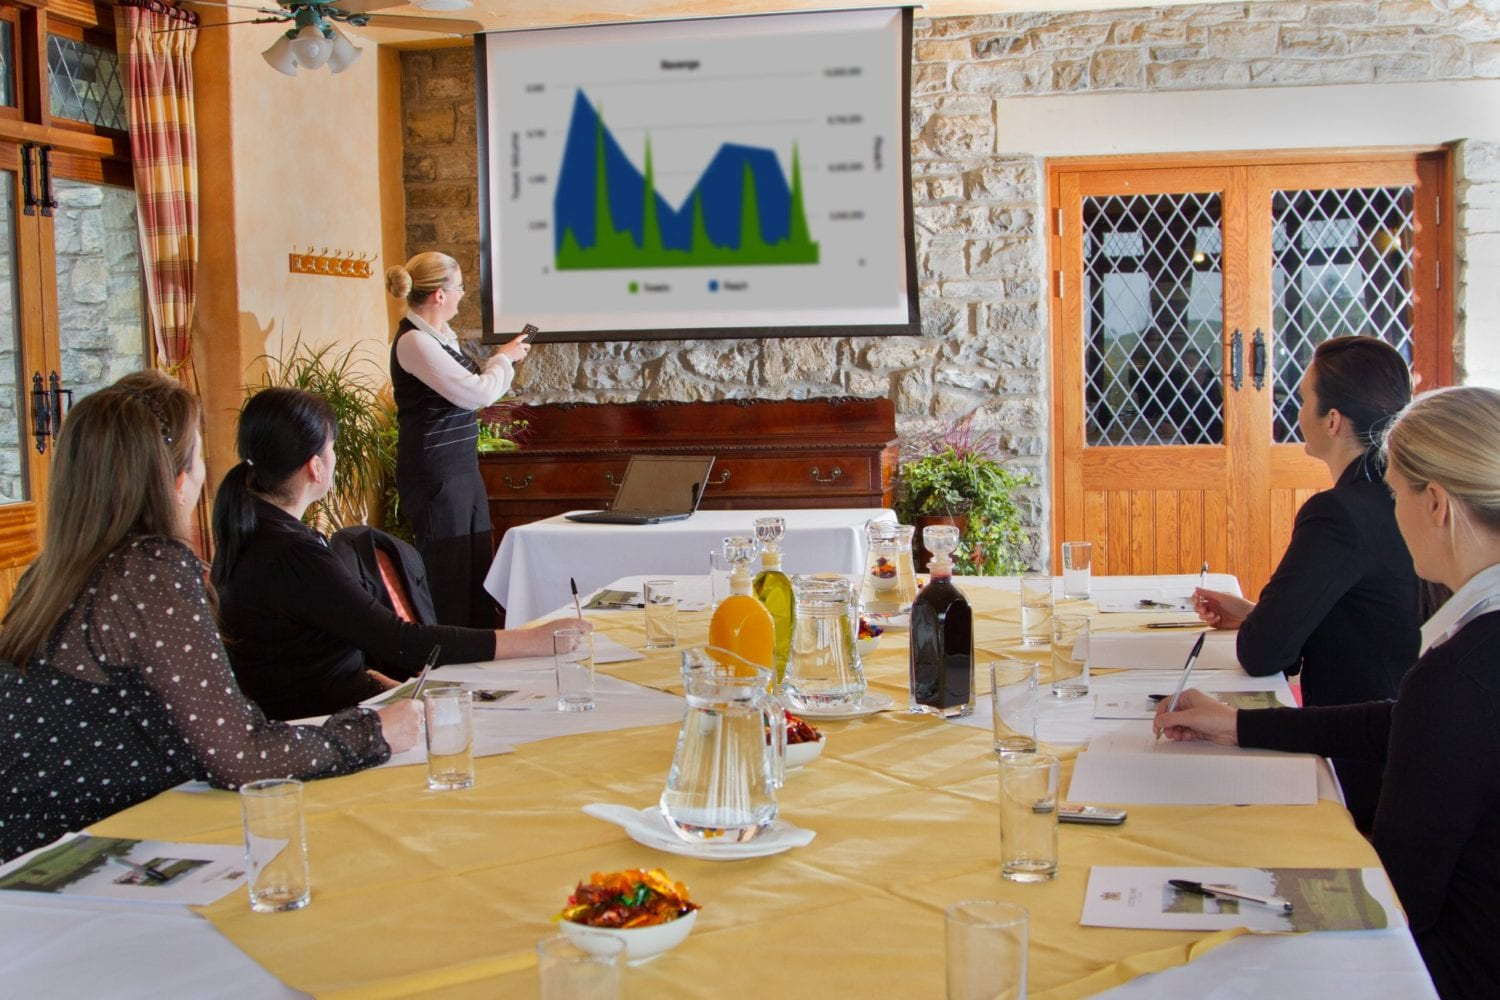 Meeting rooms to hire, Cardiff, South Wales - Group of business people watching a presentation in a cottage stylised conference space